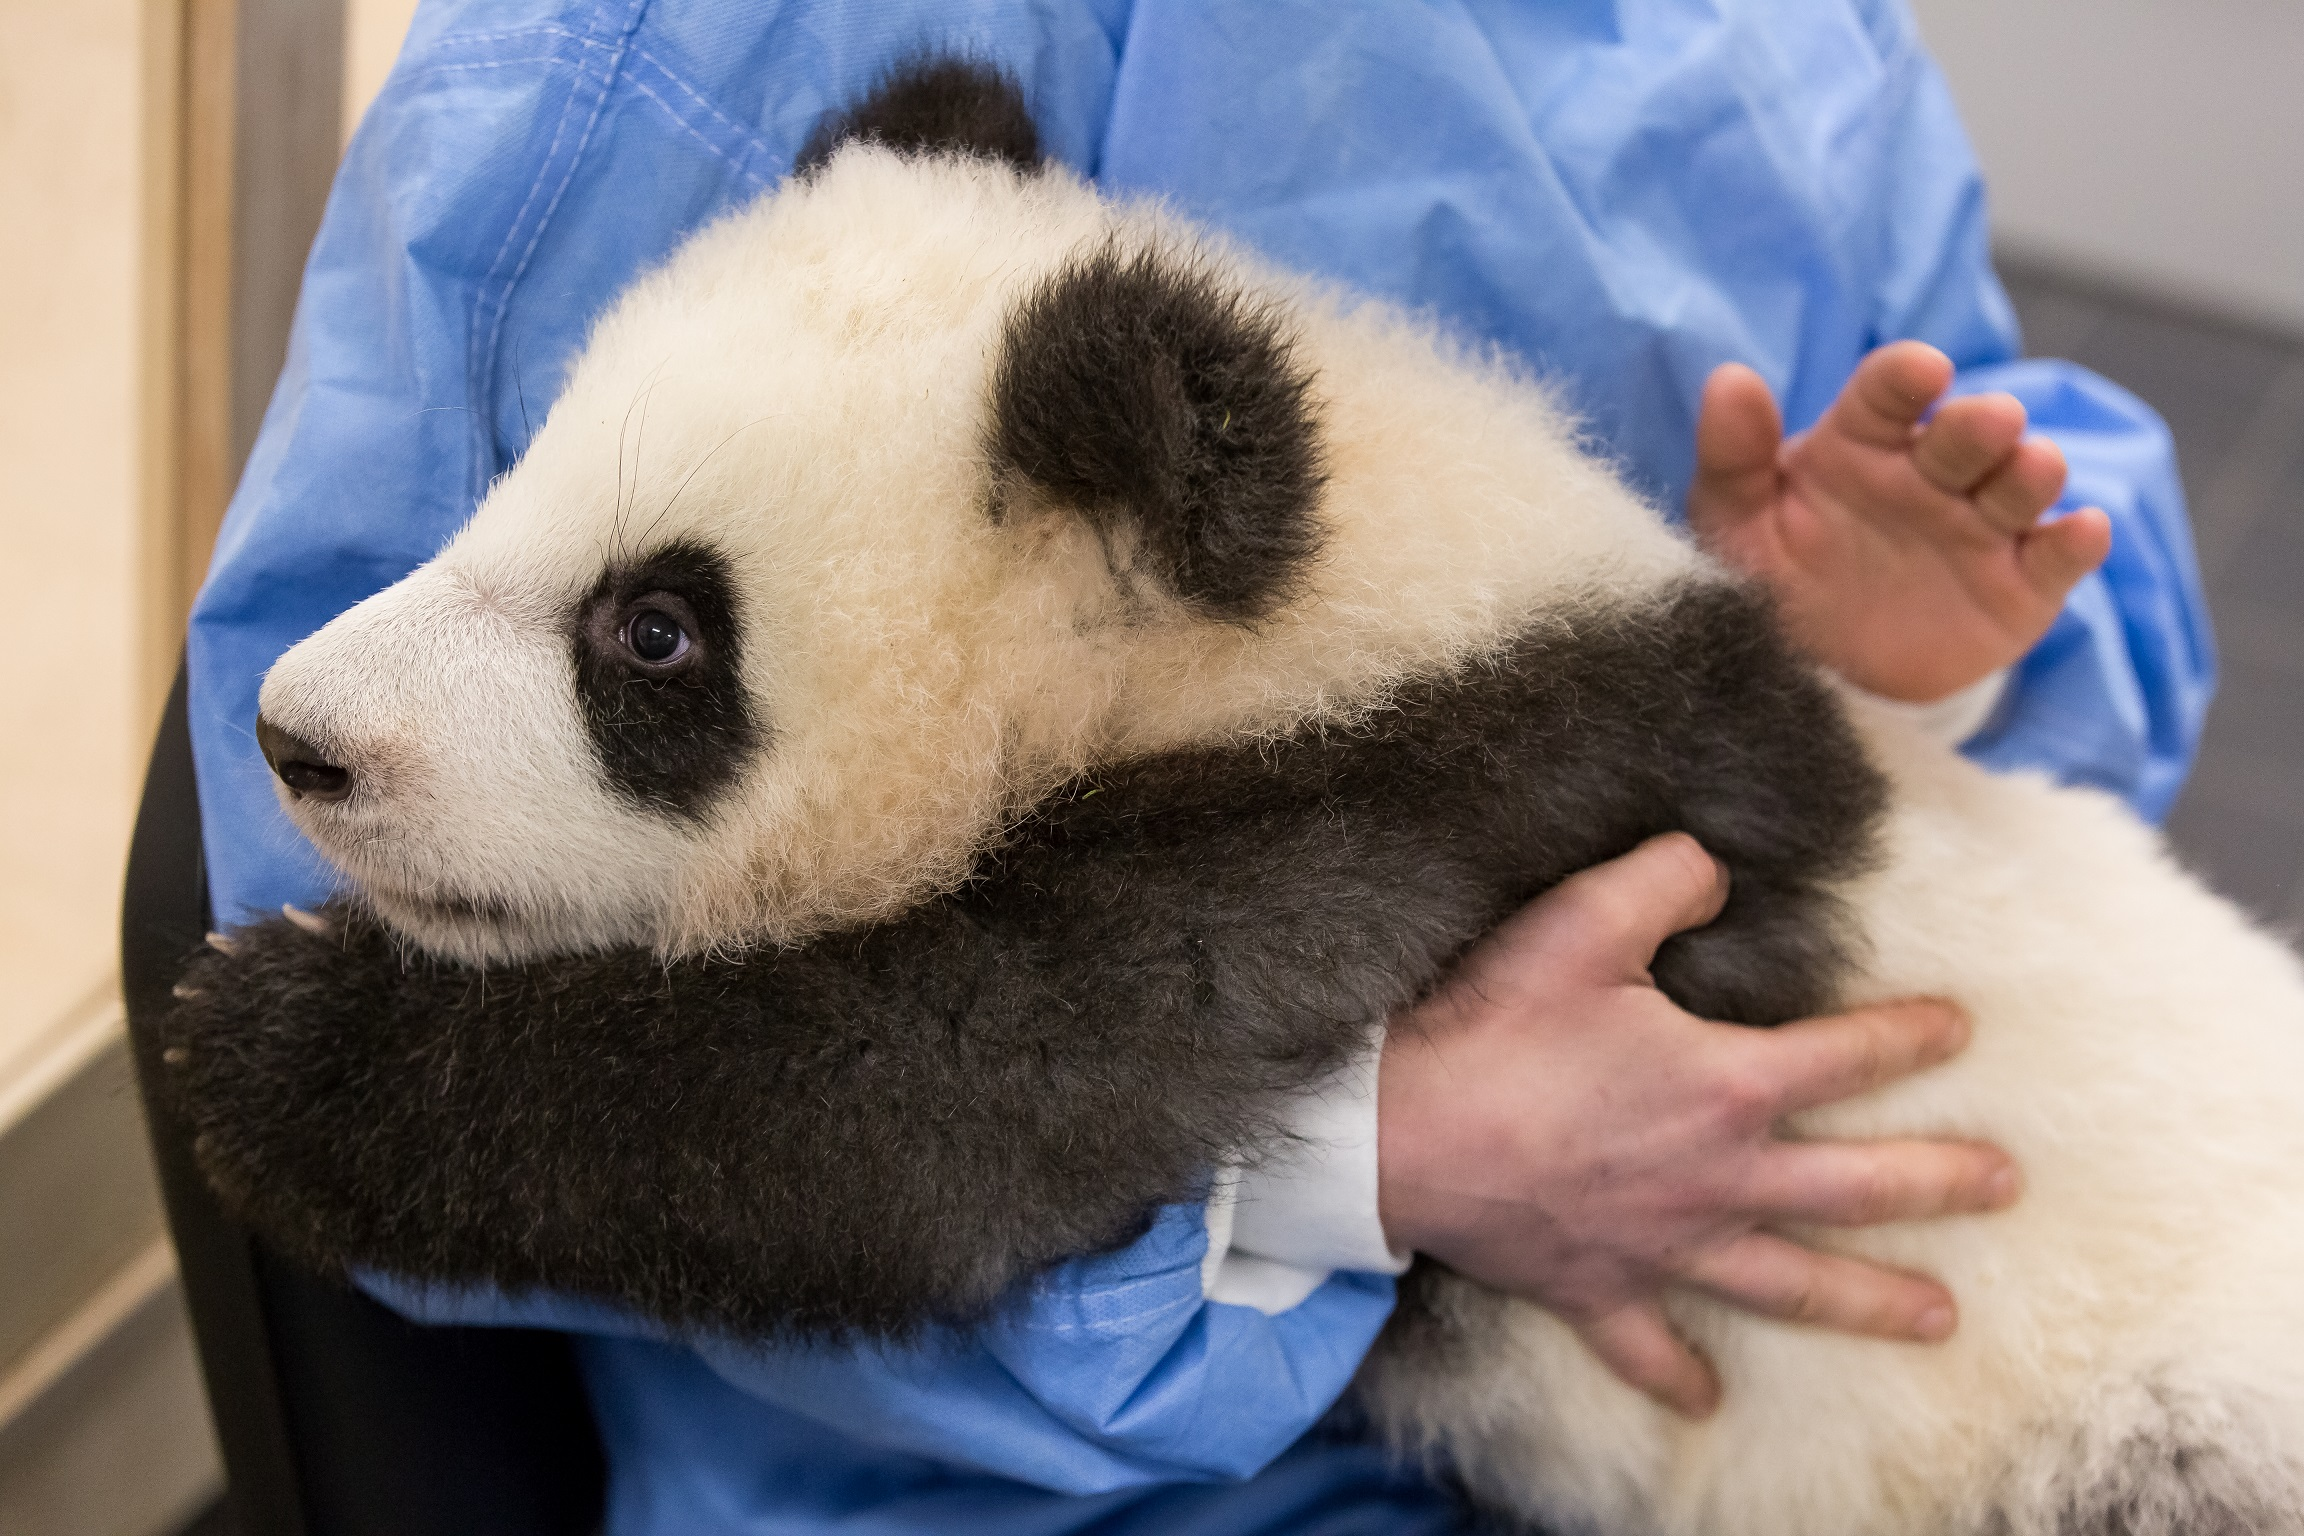 Pit the panda cub is burped after being bottle fed